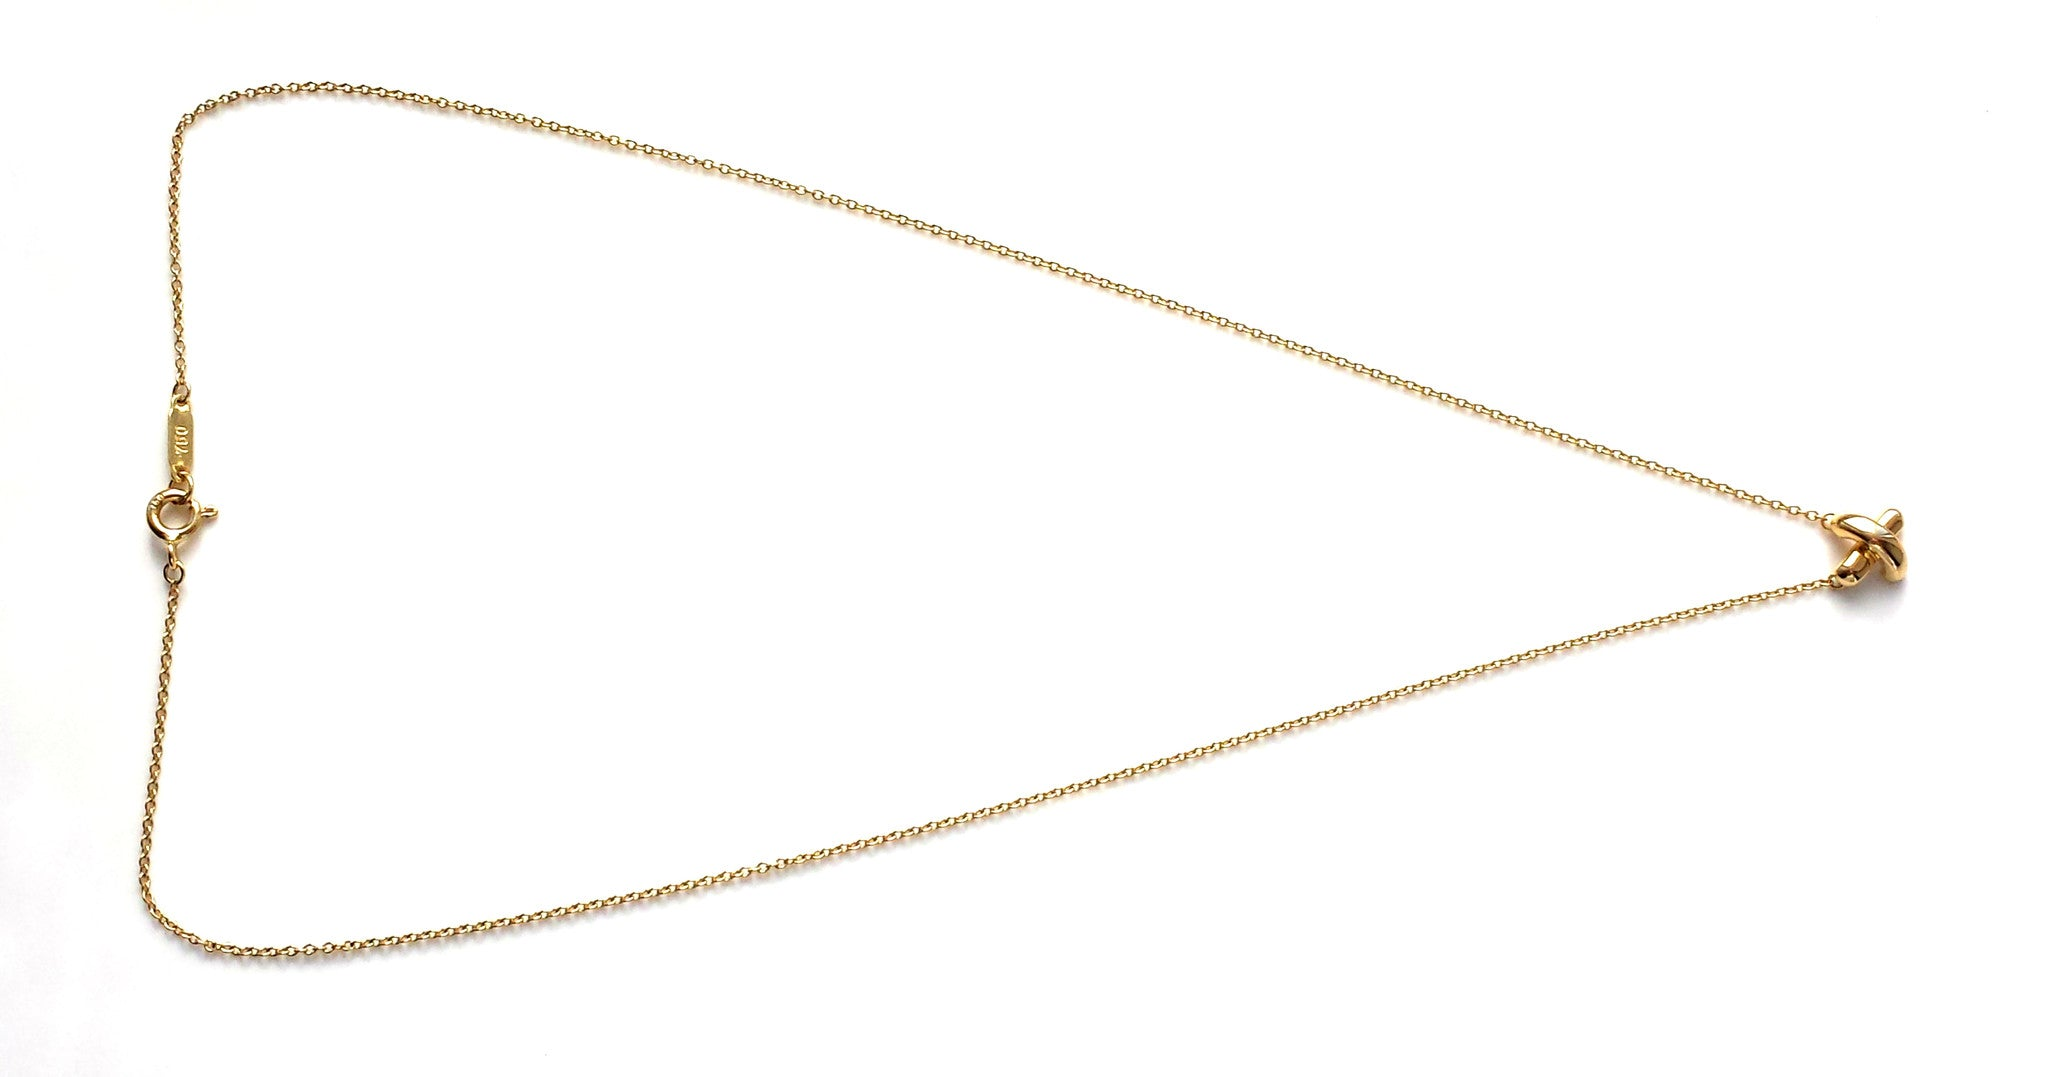 Tiffany & Co. Signature 'X' 18k Yellow Gold Pendant – 16 inch